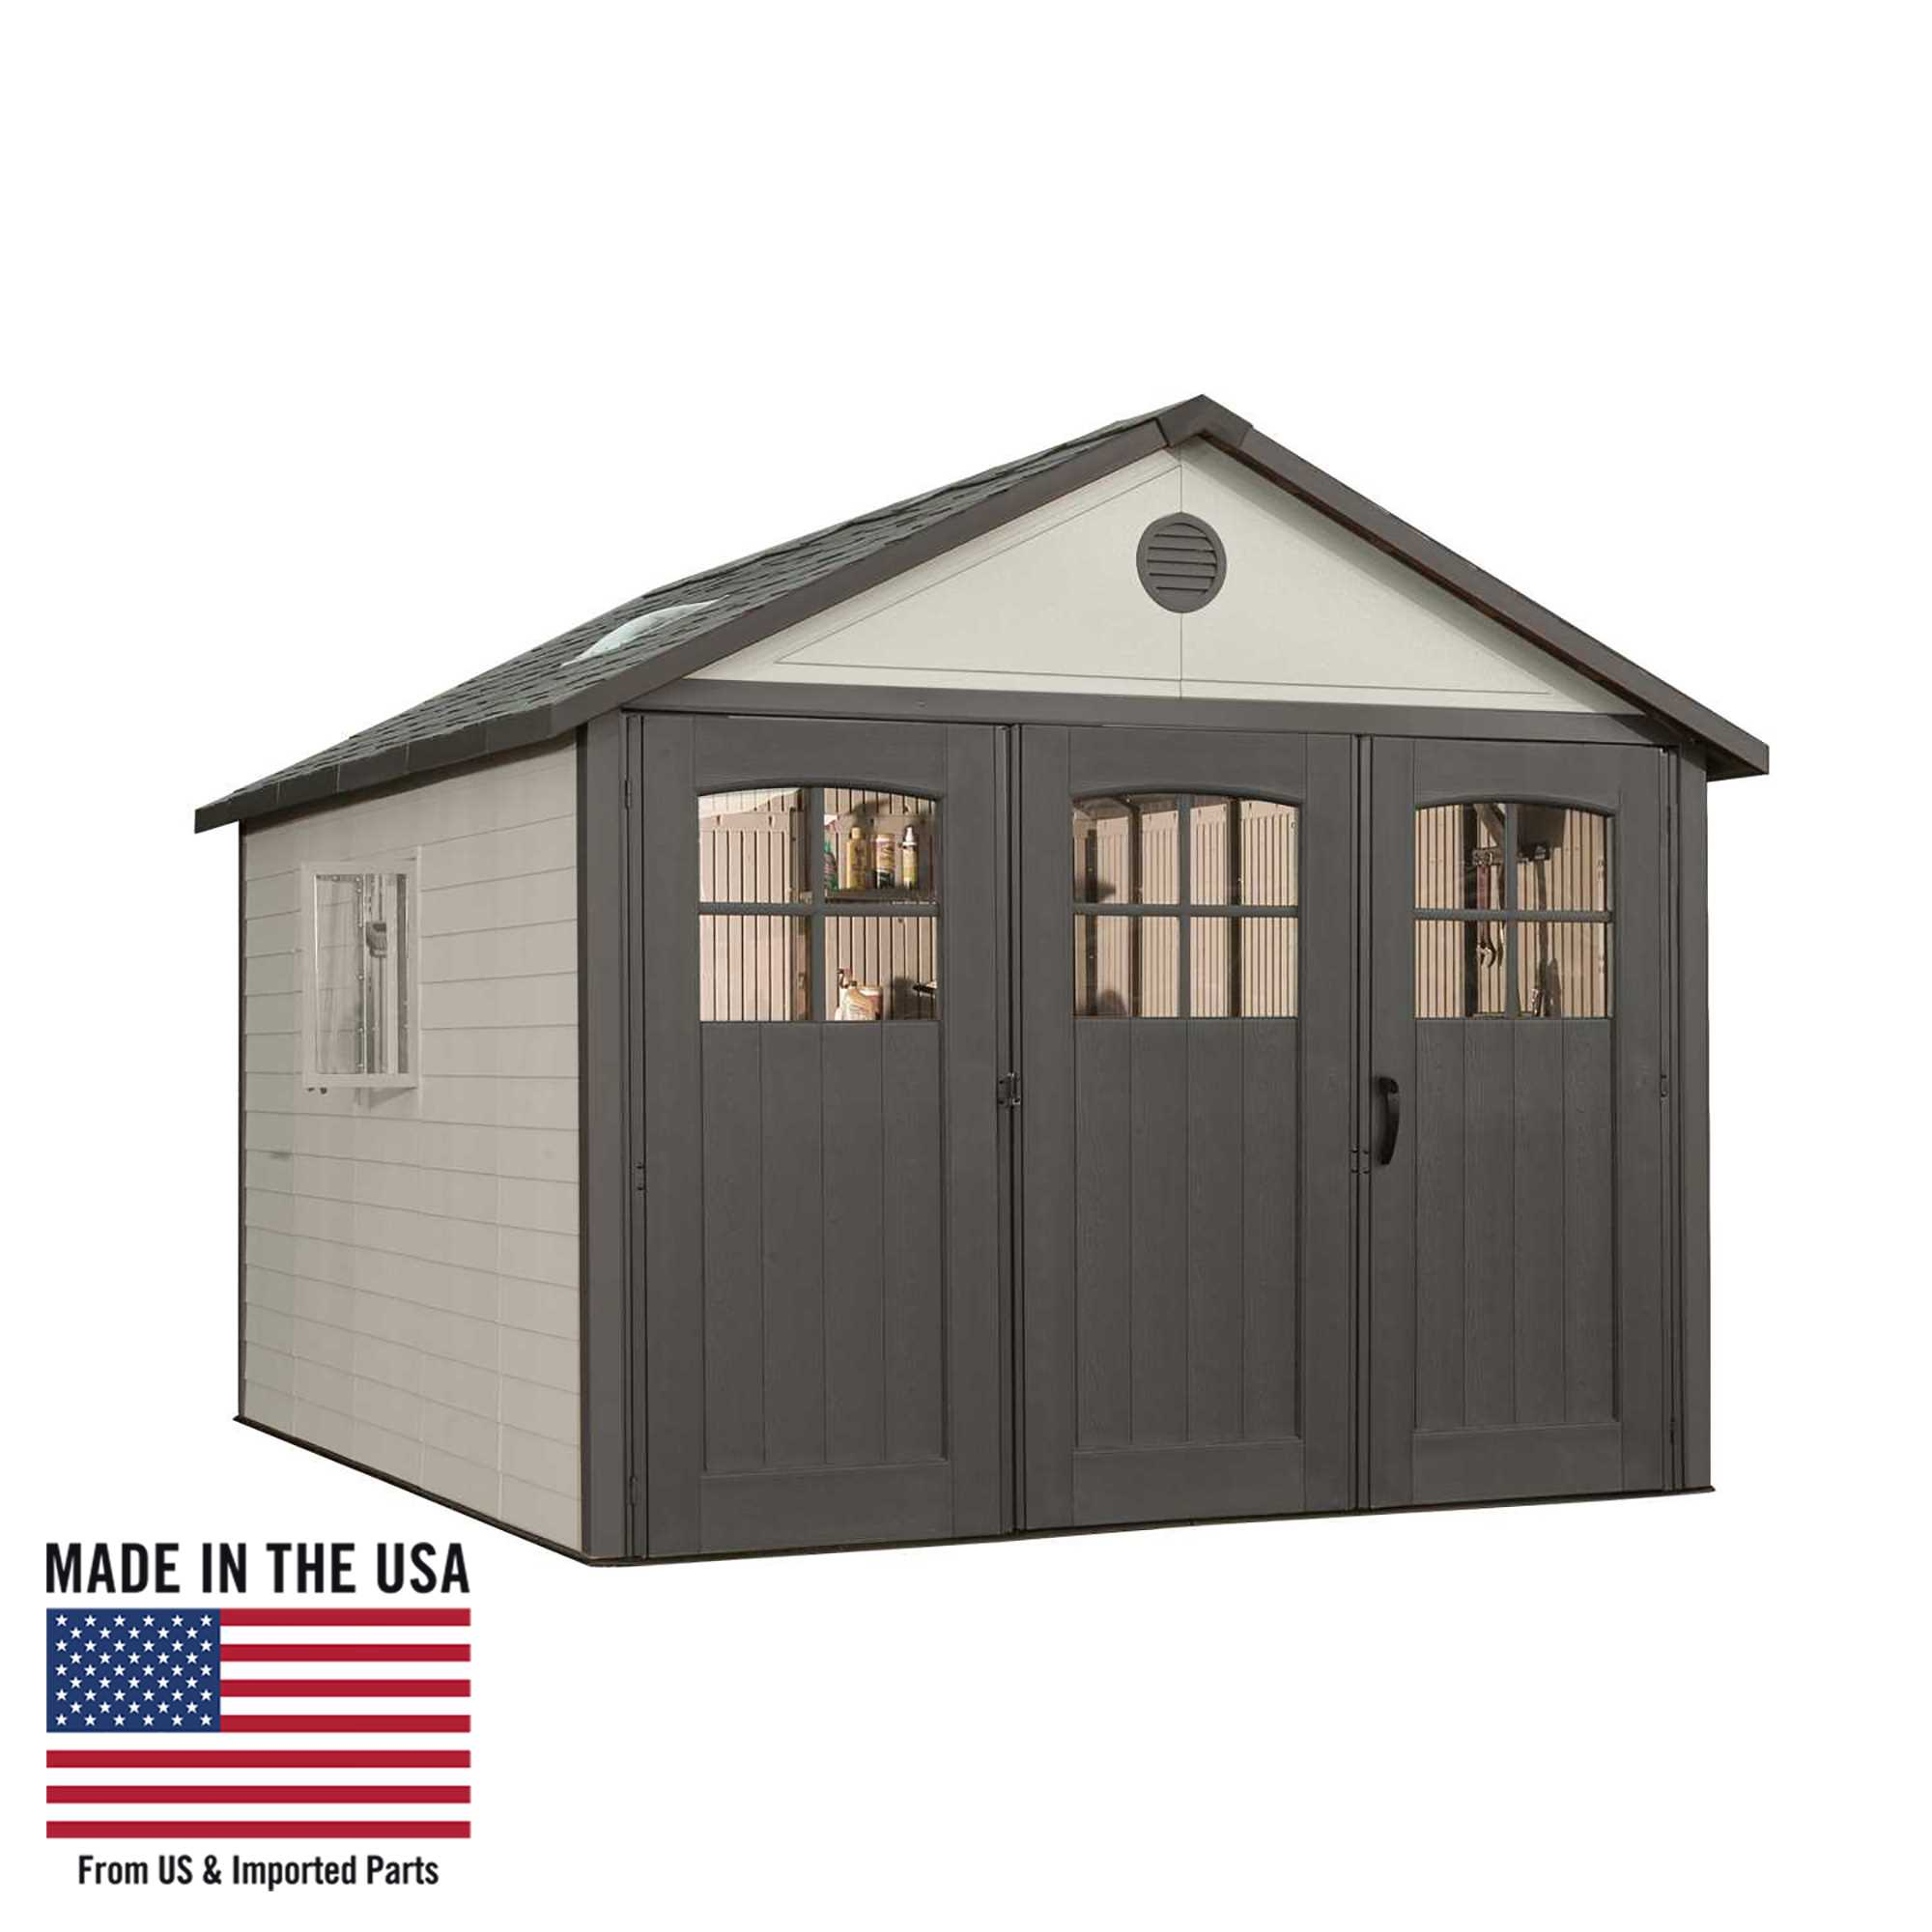 Lifetime 11 Ft. x 11 Ft. Outdoor Storage Shed, 60187